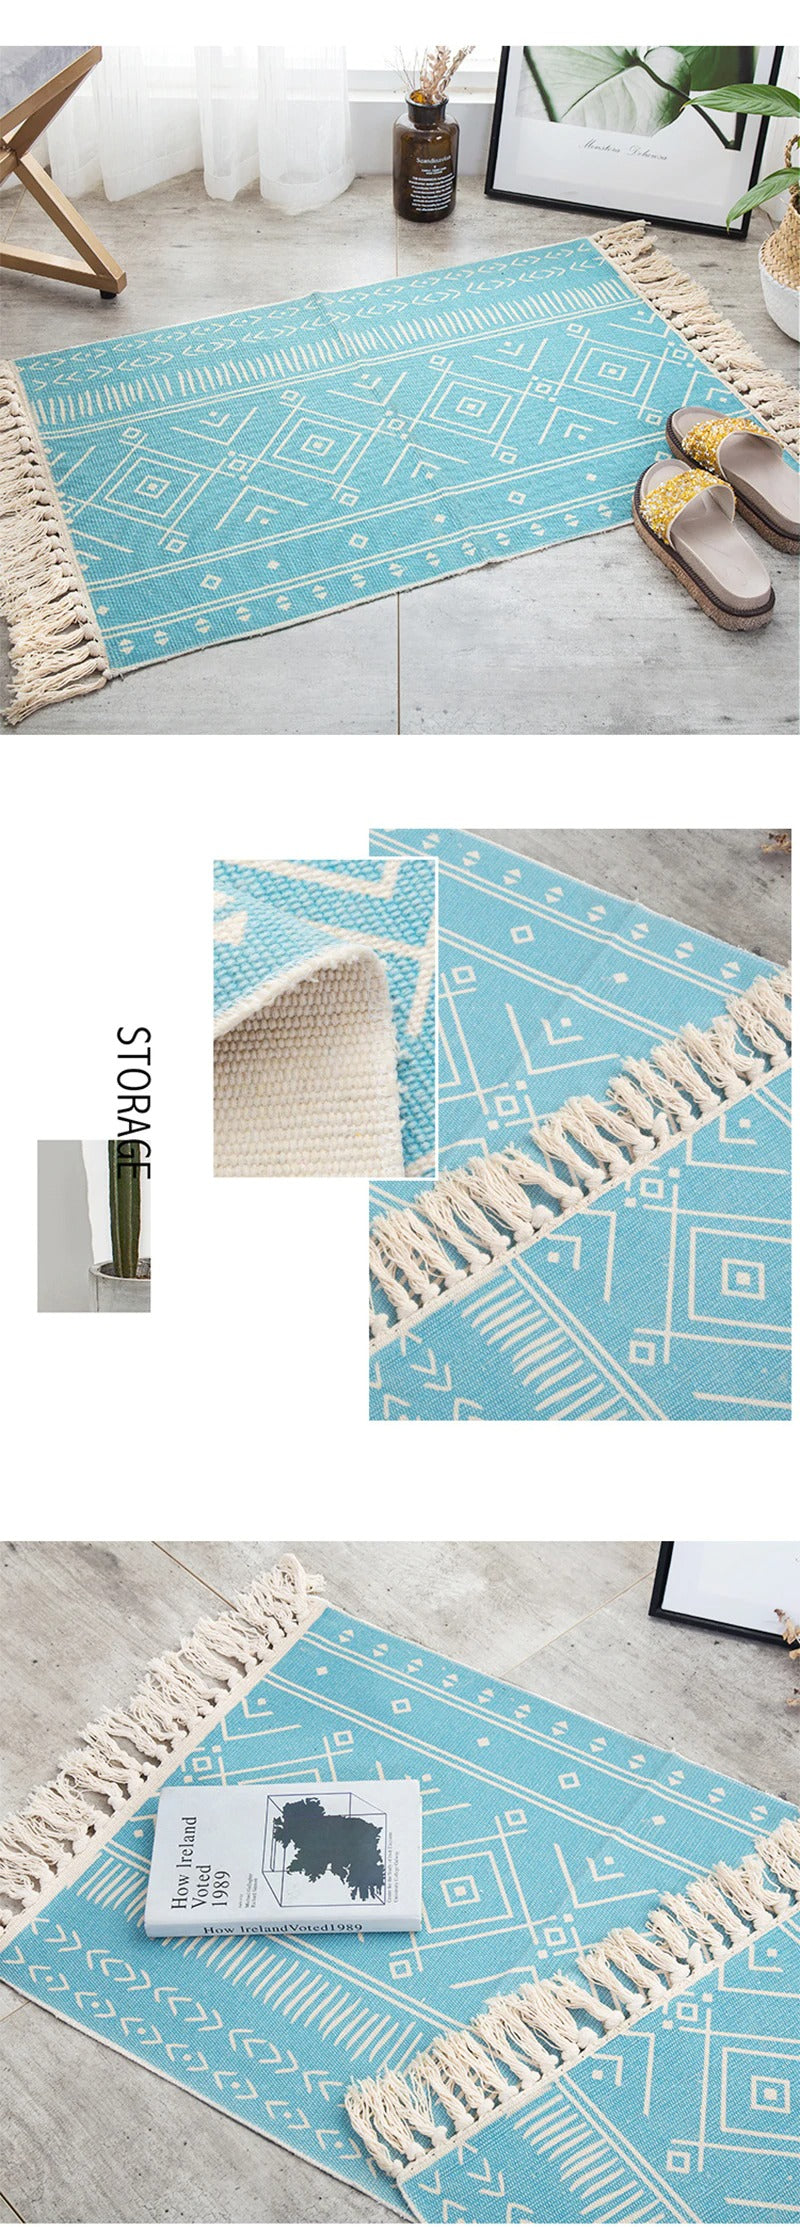 Vintage hand-woven rug, made of cotton and linen, light blue with white lines.